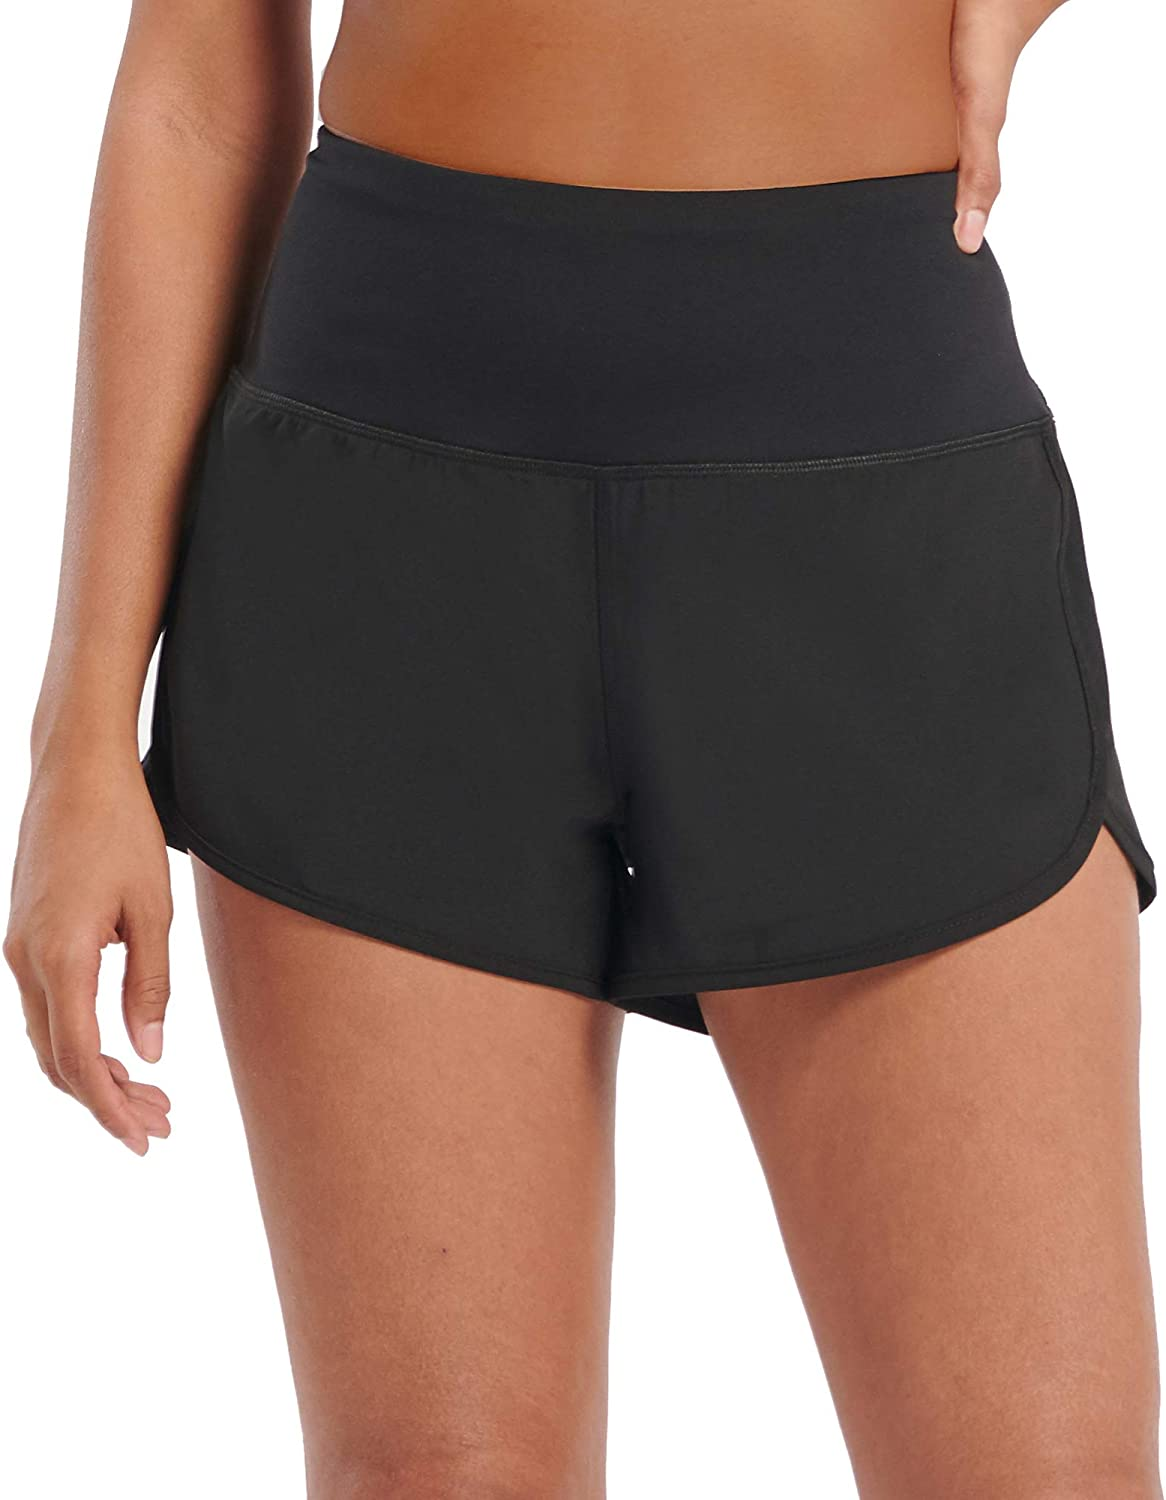 Workout Shorts for Women Active Wear Yoga Running Athletic Shorts Built in Underwear: Clothing